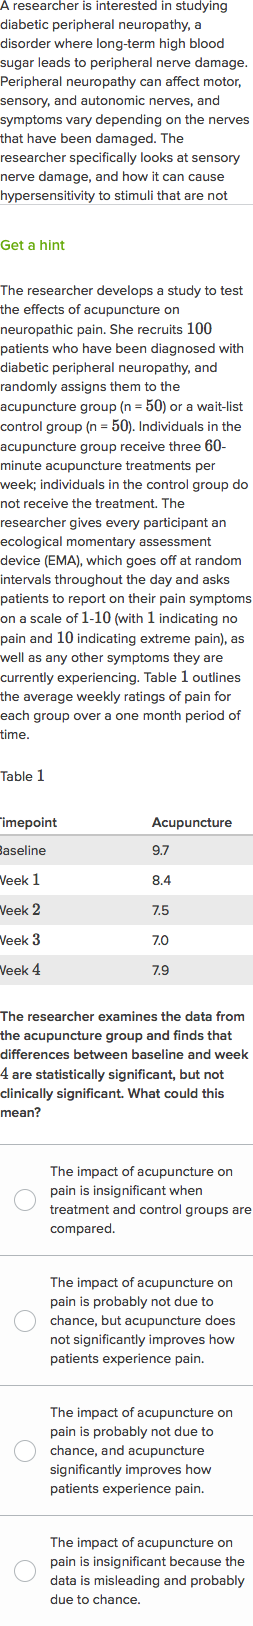 Diabetic peripheral neuropathy, pain, and acupuncture